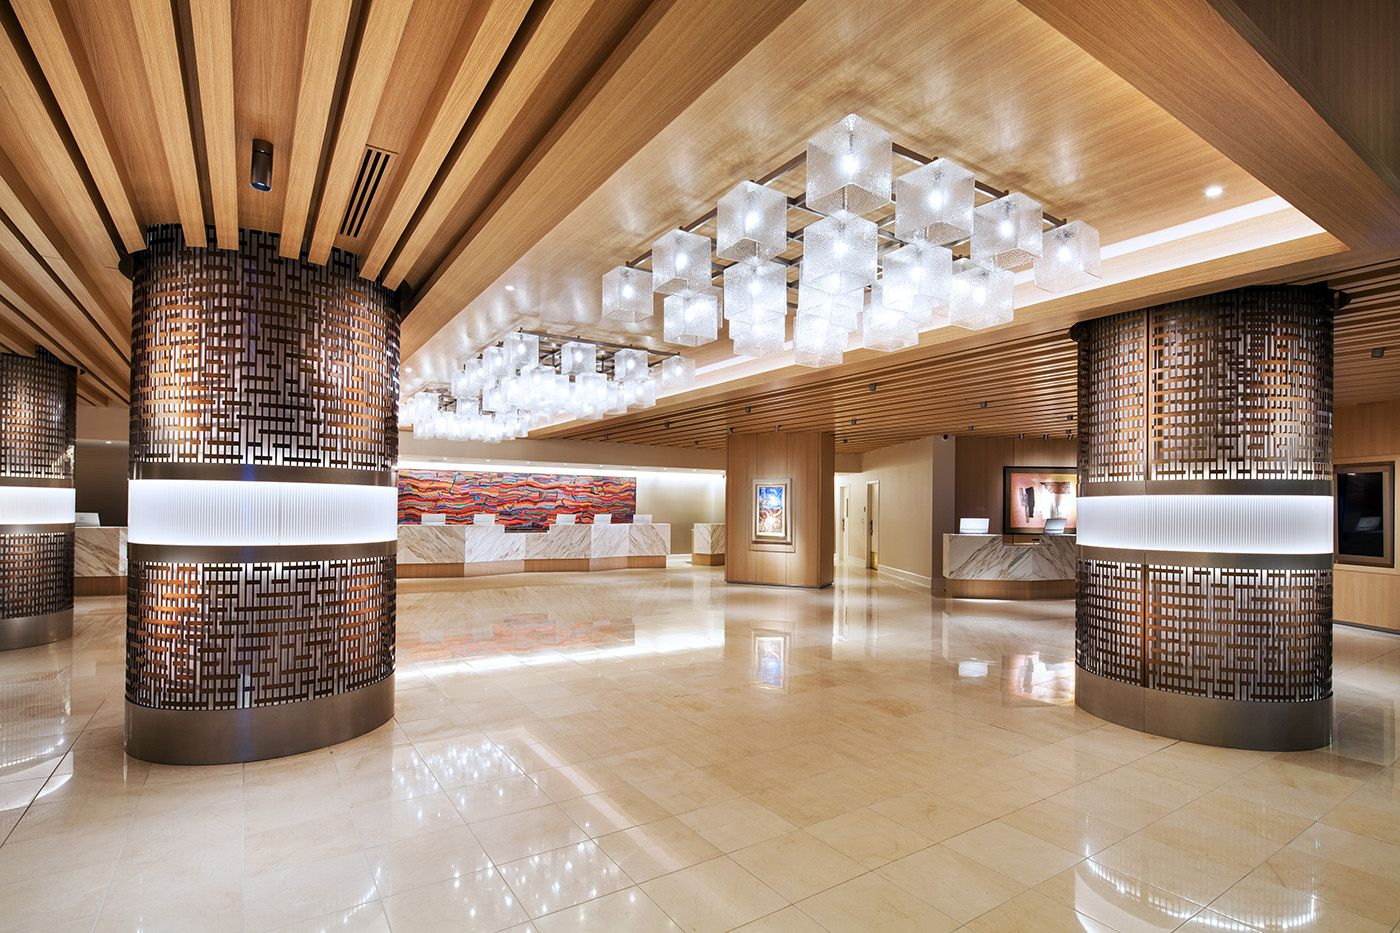 Sheraton Seattle Hotel has completed a major renovation